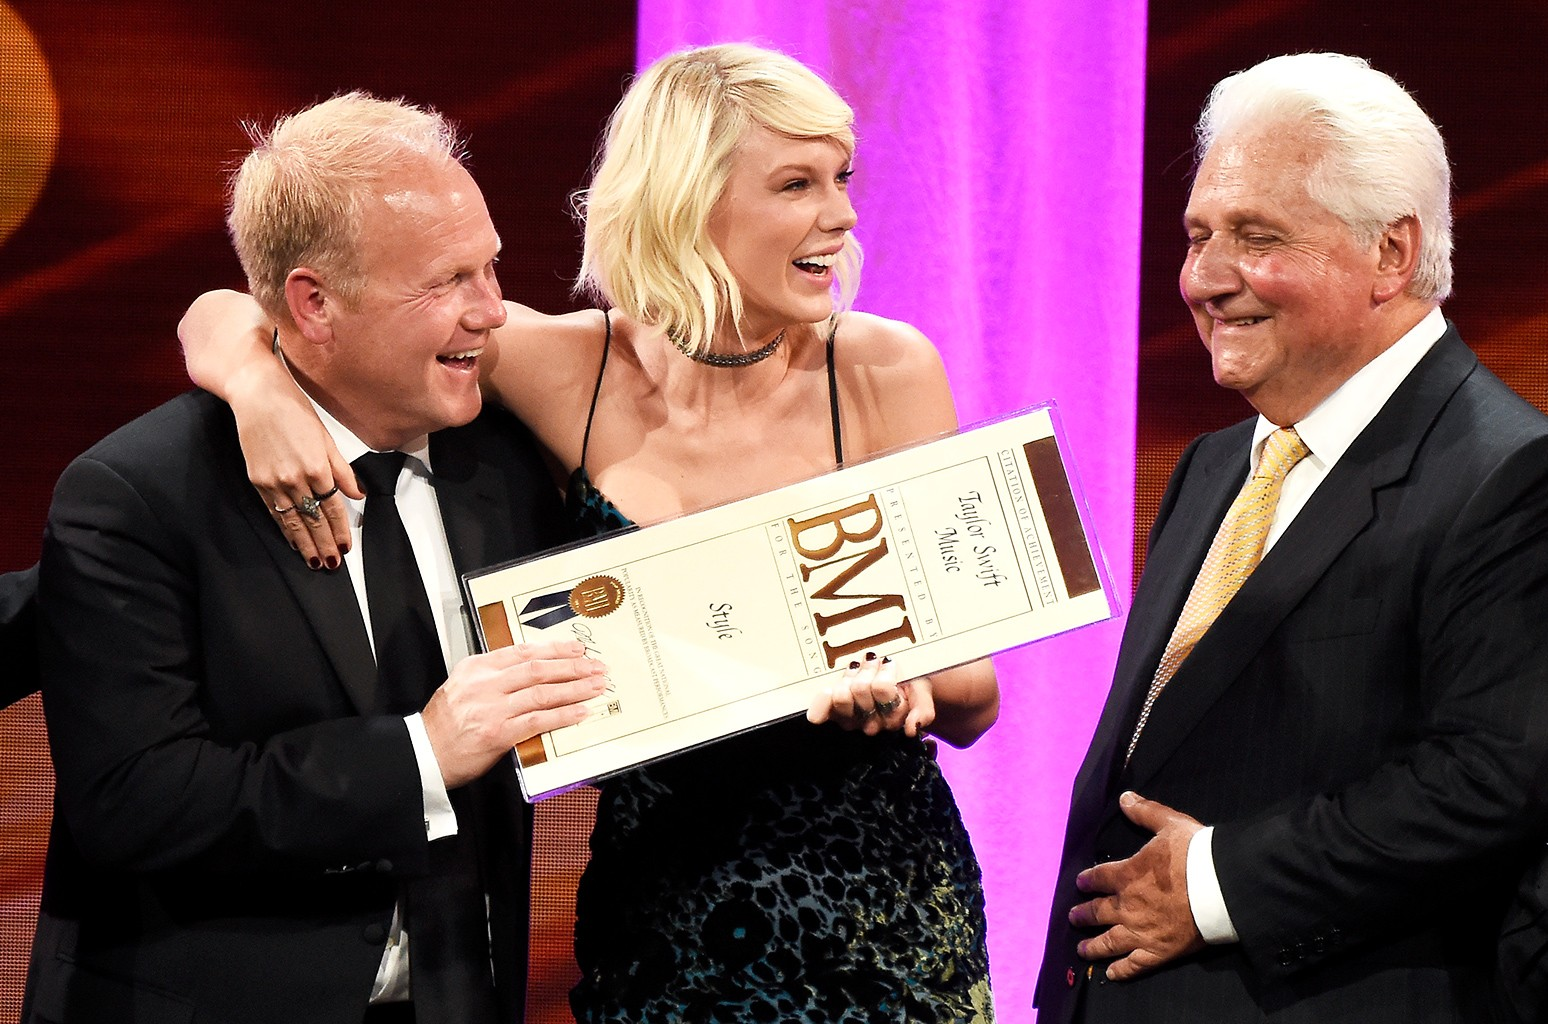 Taylor Swift Accepts First Taylor Swift Award And Top Songwriter Prize At Bmi Pop Awards Billboard